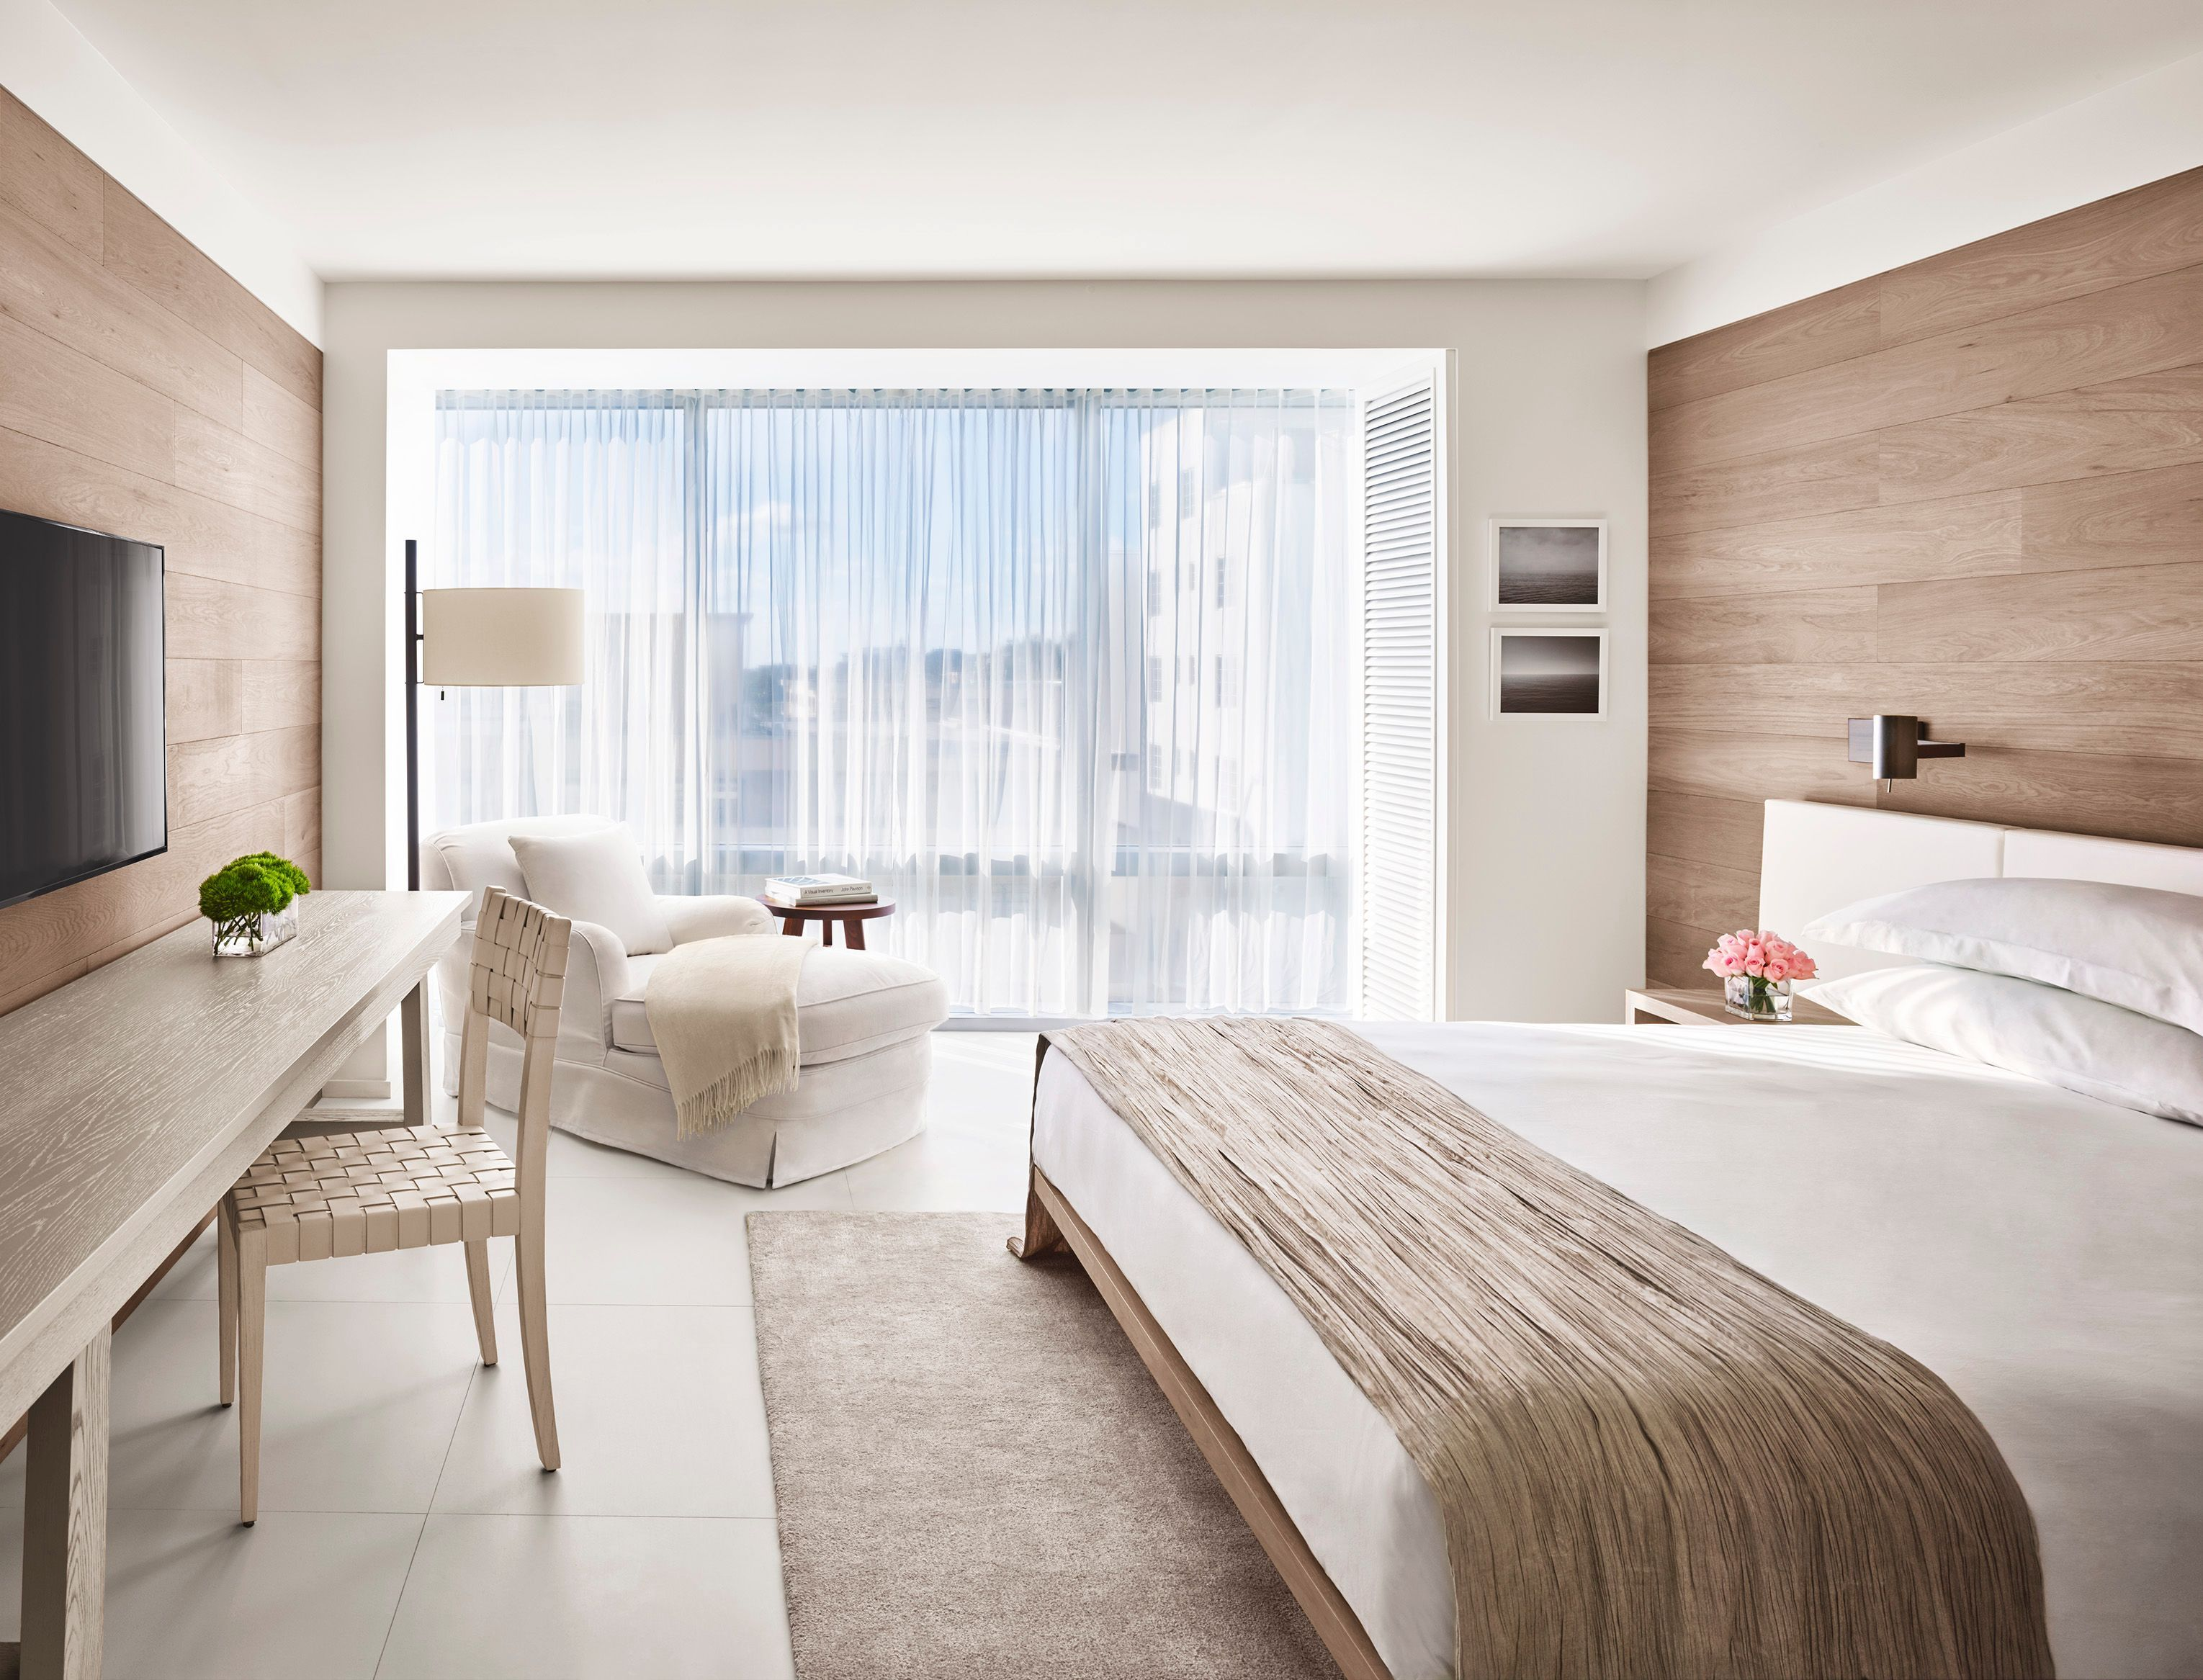 Yabu pushelberg the miami beach edition bedroom luxury for Hotel room interior design